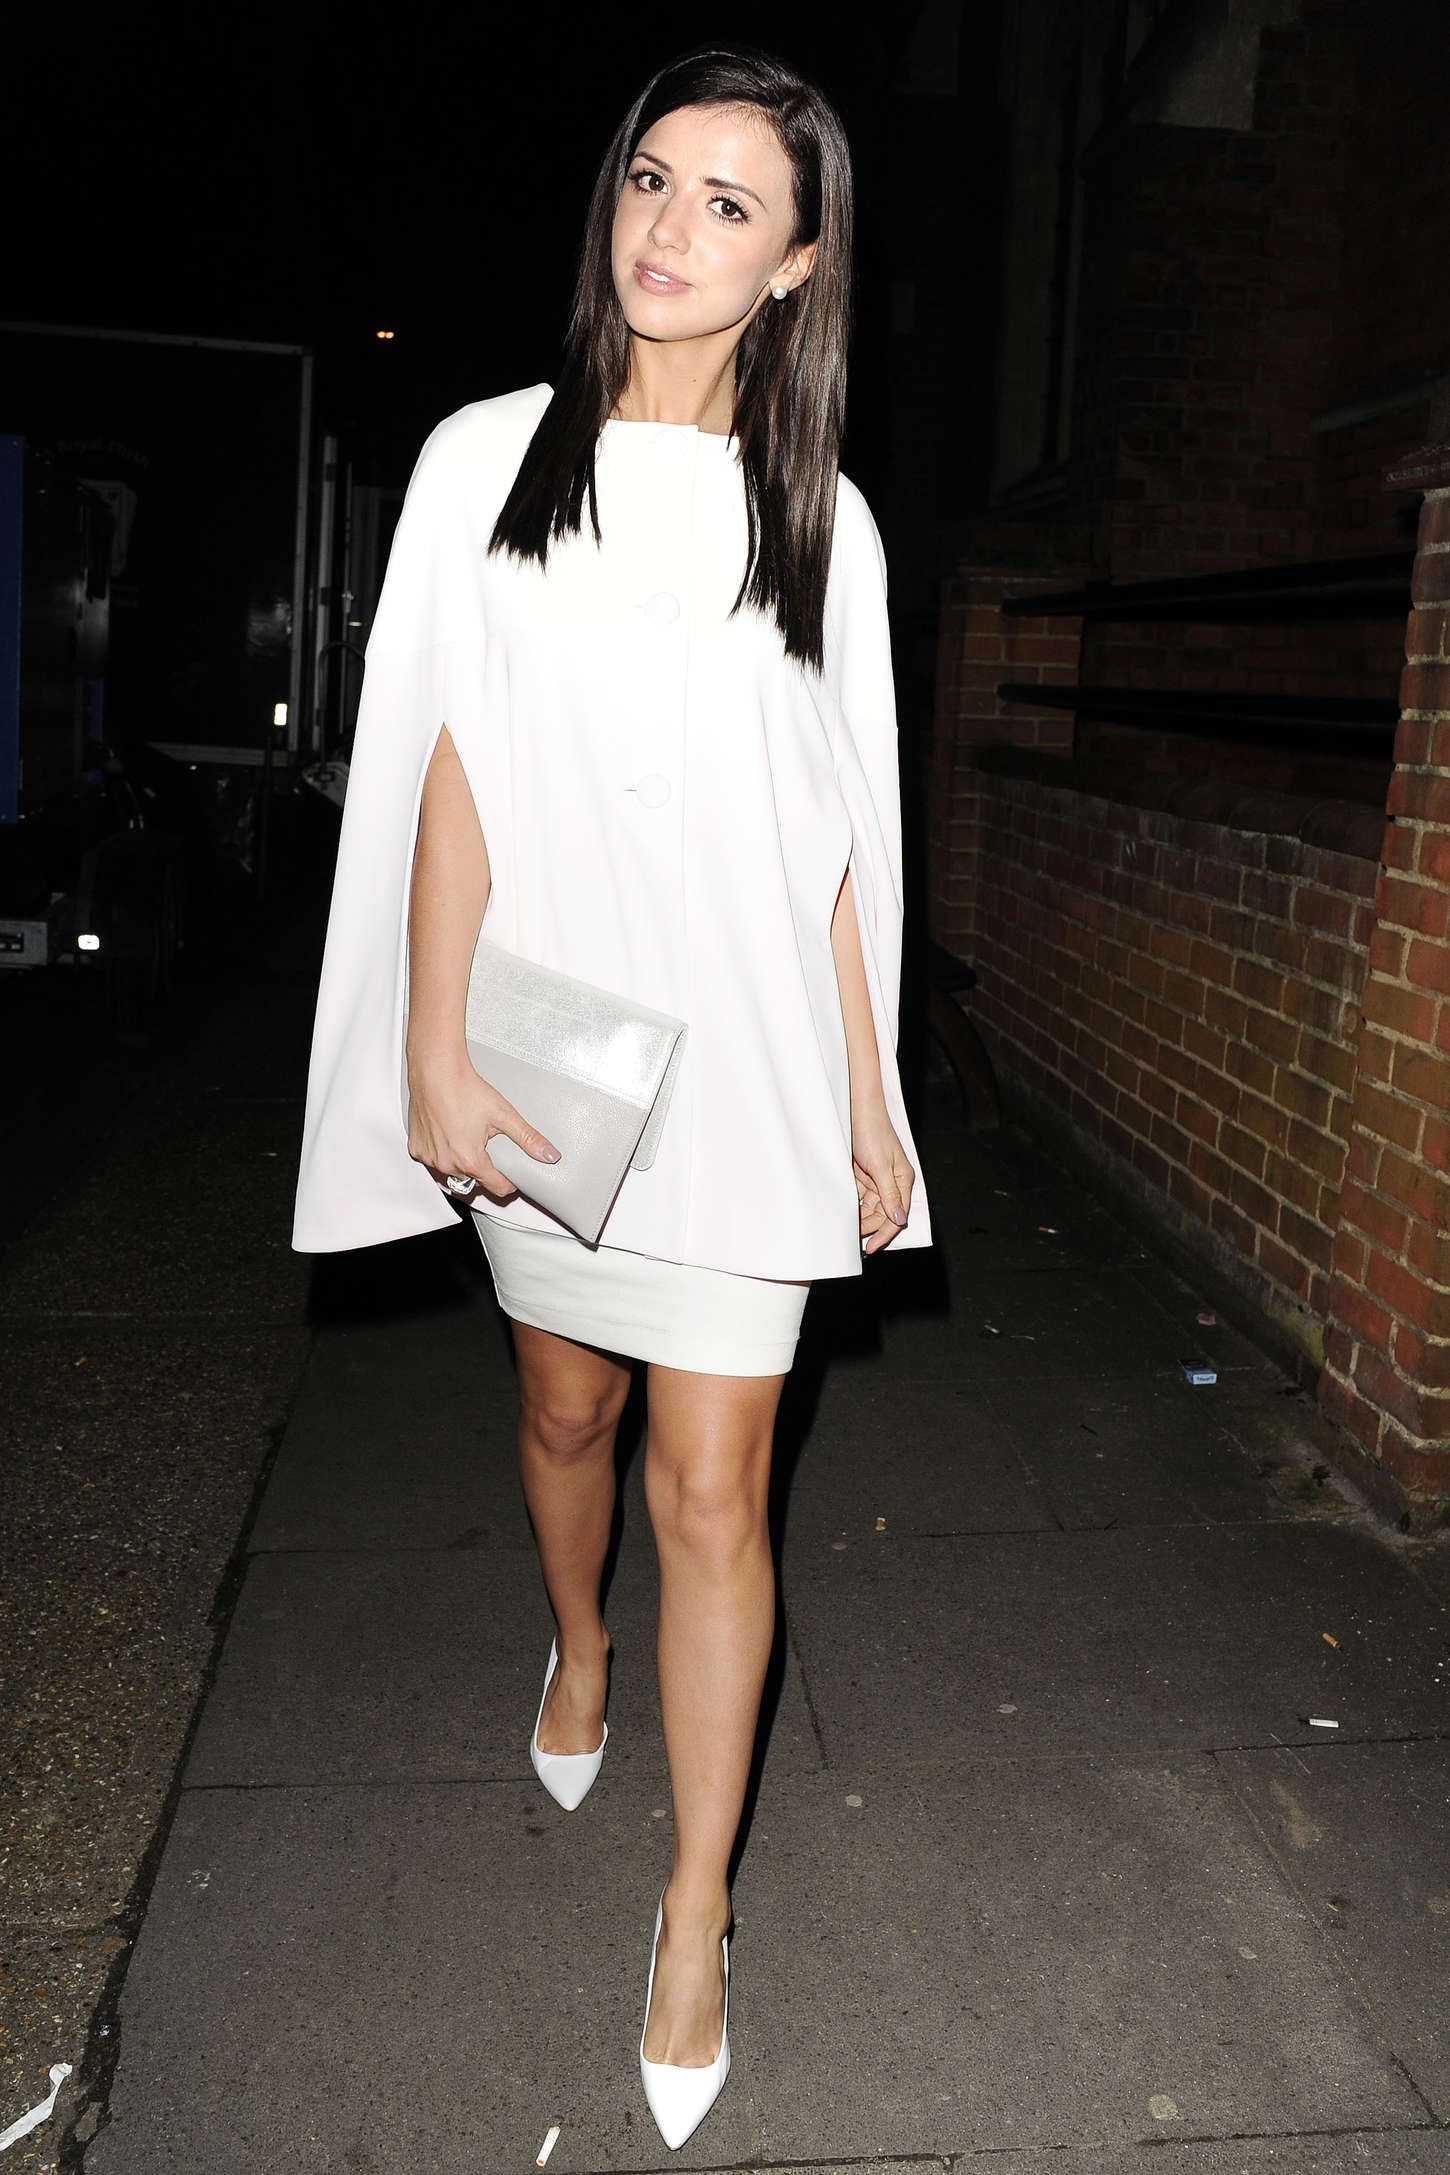 Lucy Mecklenburgh Many Hopes London Banquet And Fashion Show 03 Gotceleb